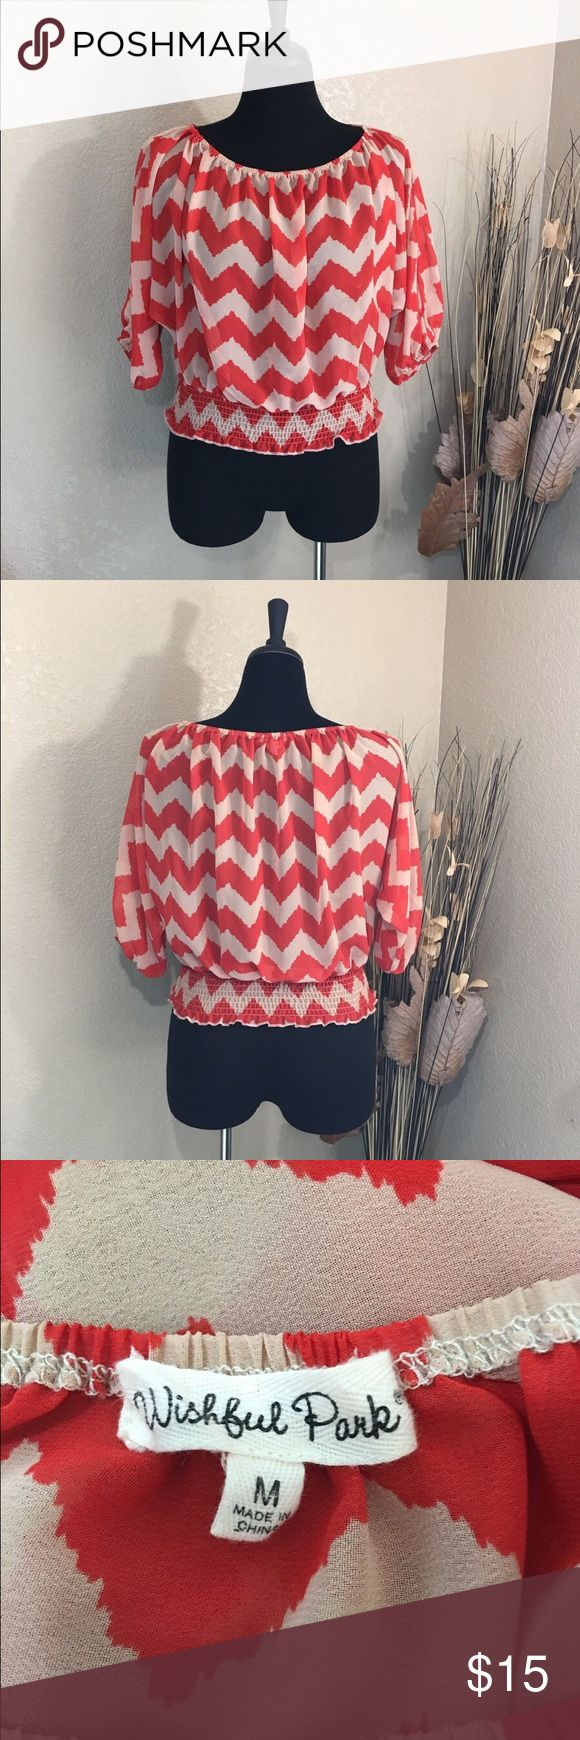 Wishful Park Red and Tan Chevron Top Sheer chevron top in red and tan. Gently pre-loved condition. Wishful Park Tops